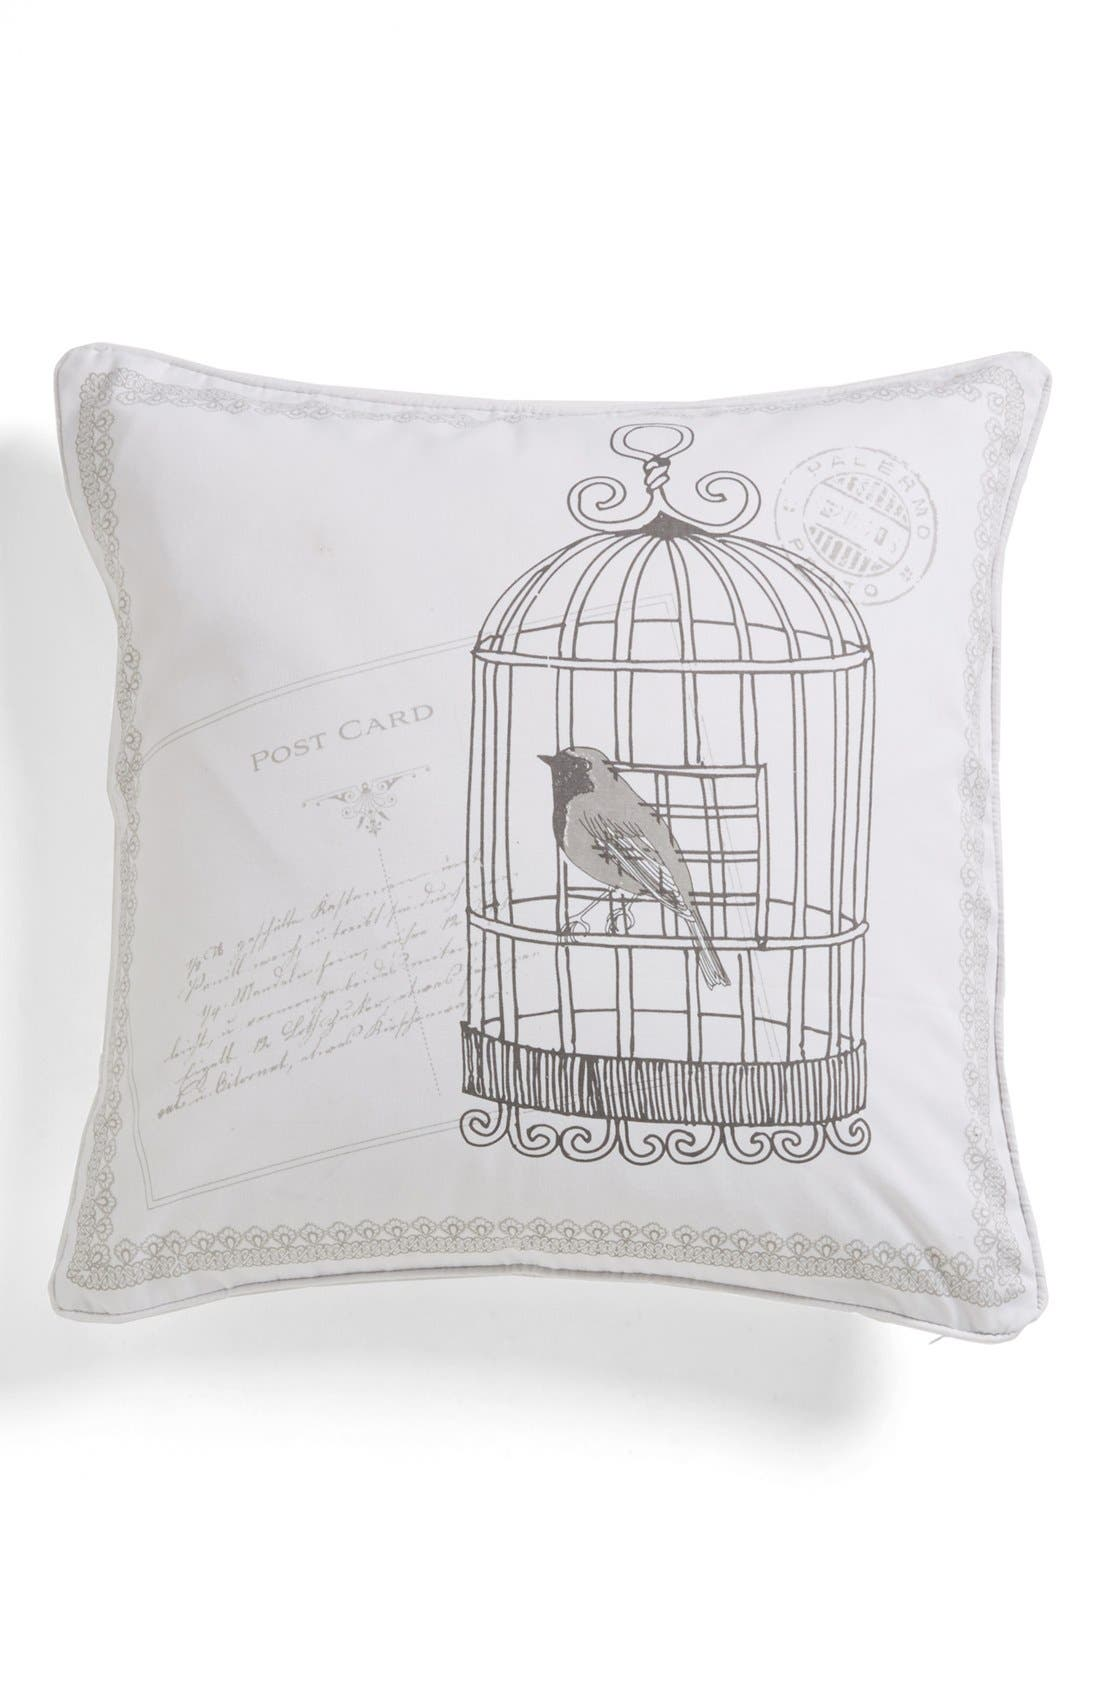 Alternate Image 1 Selected - Levtex 'Hemingway' Birdcage Pillow